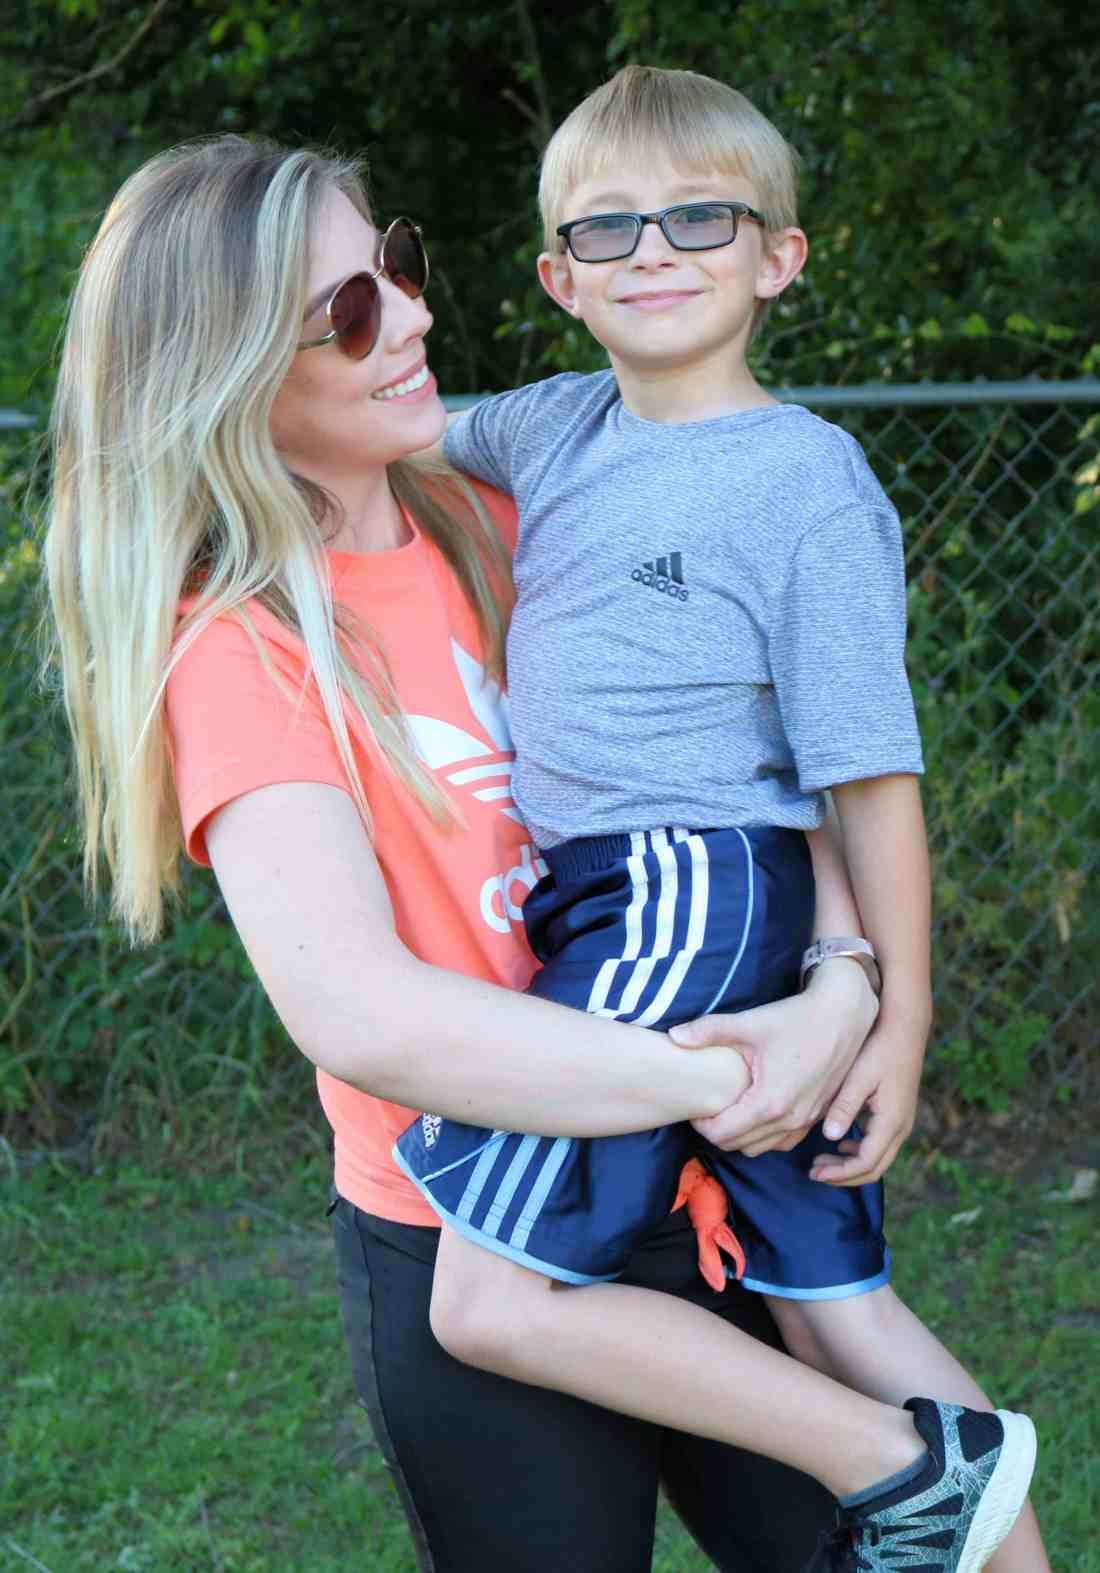 Sharing our favorite outdoor family activities plus our favorite activewear outfits from adidas to wear in the summer months! #adidas #activewear #healthylifestyle